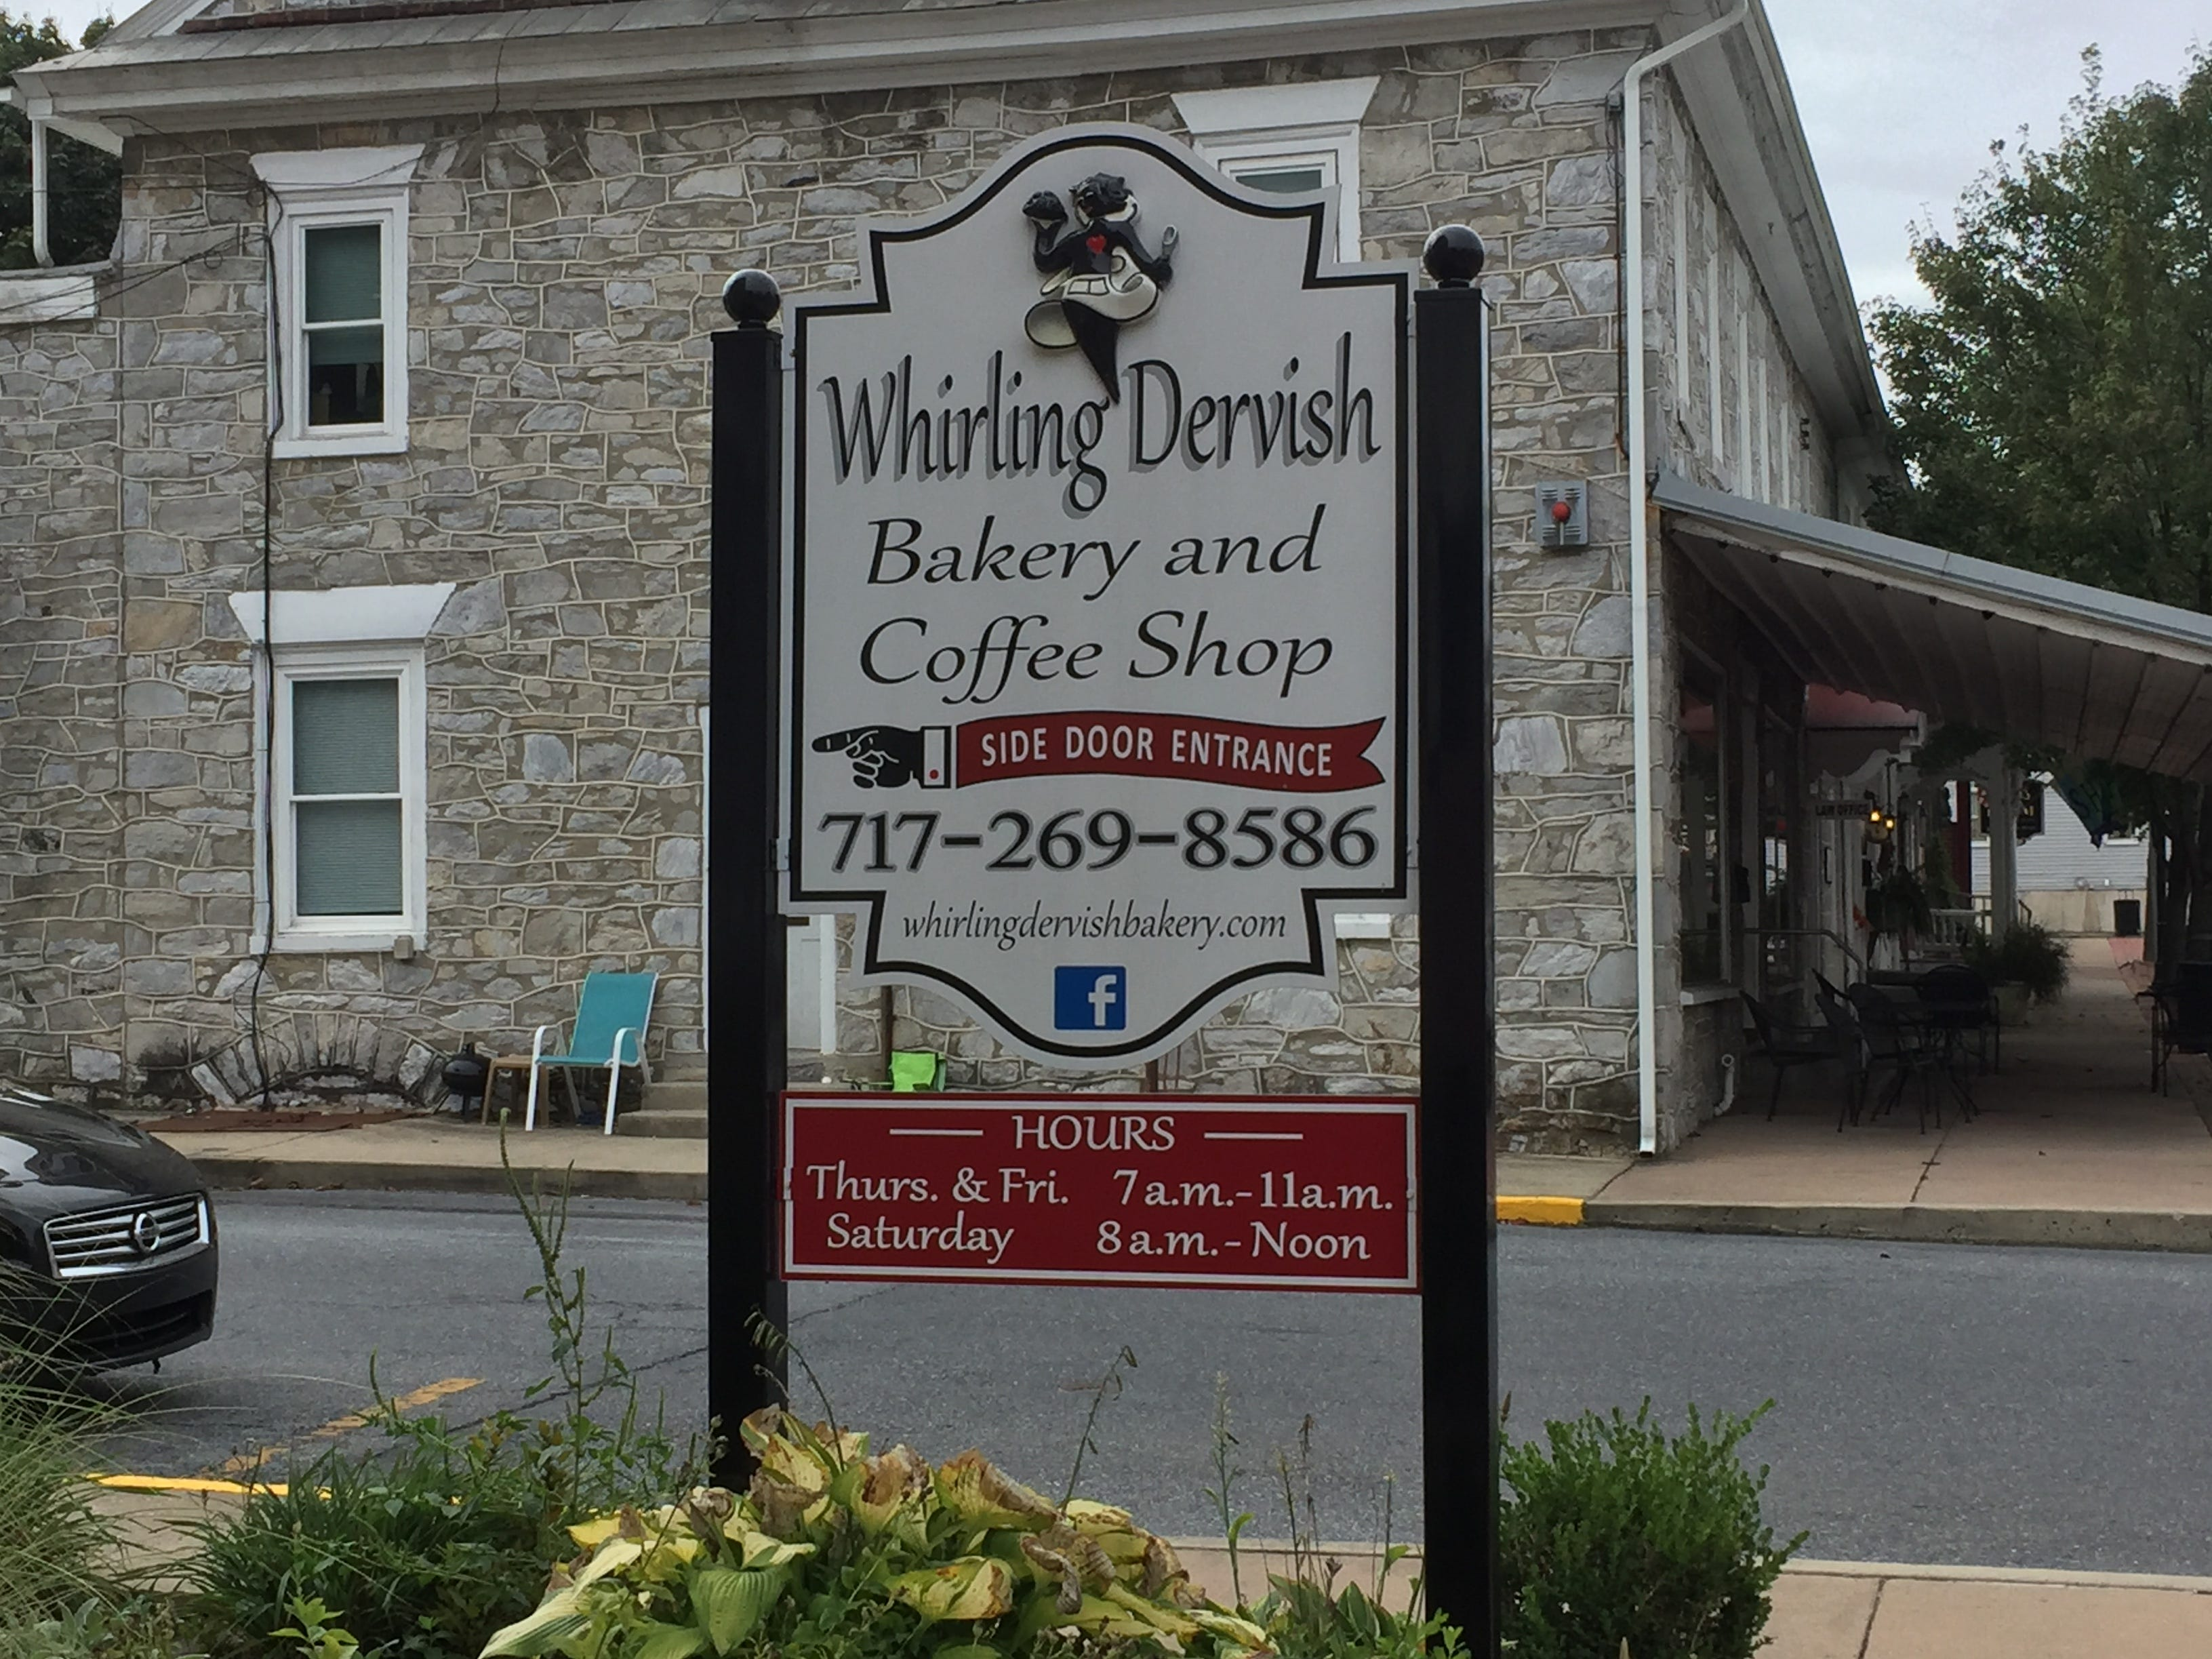 Whirling Dervish Bakery